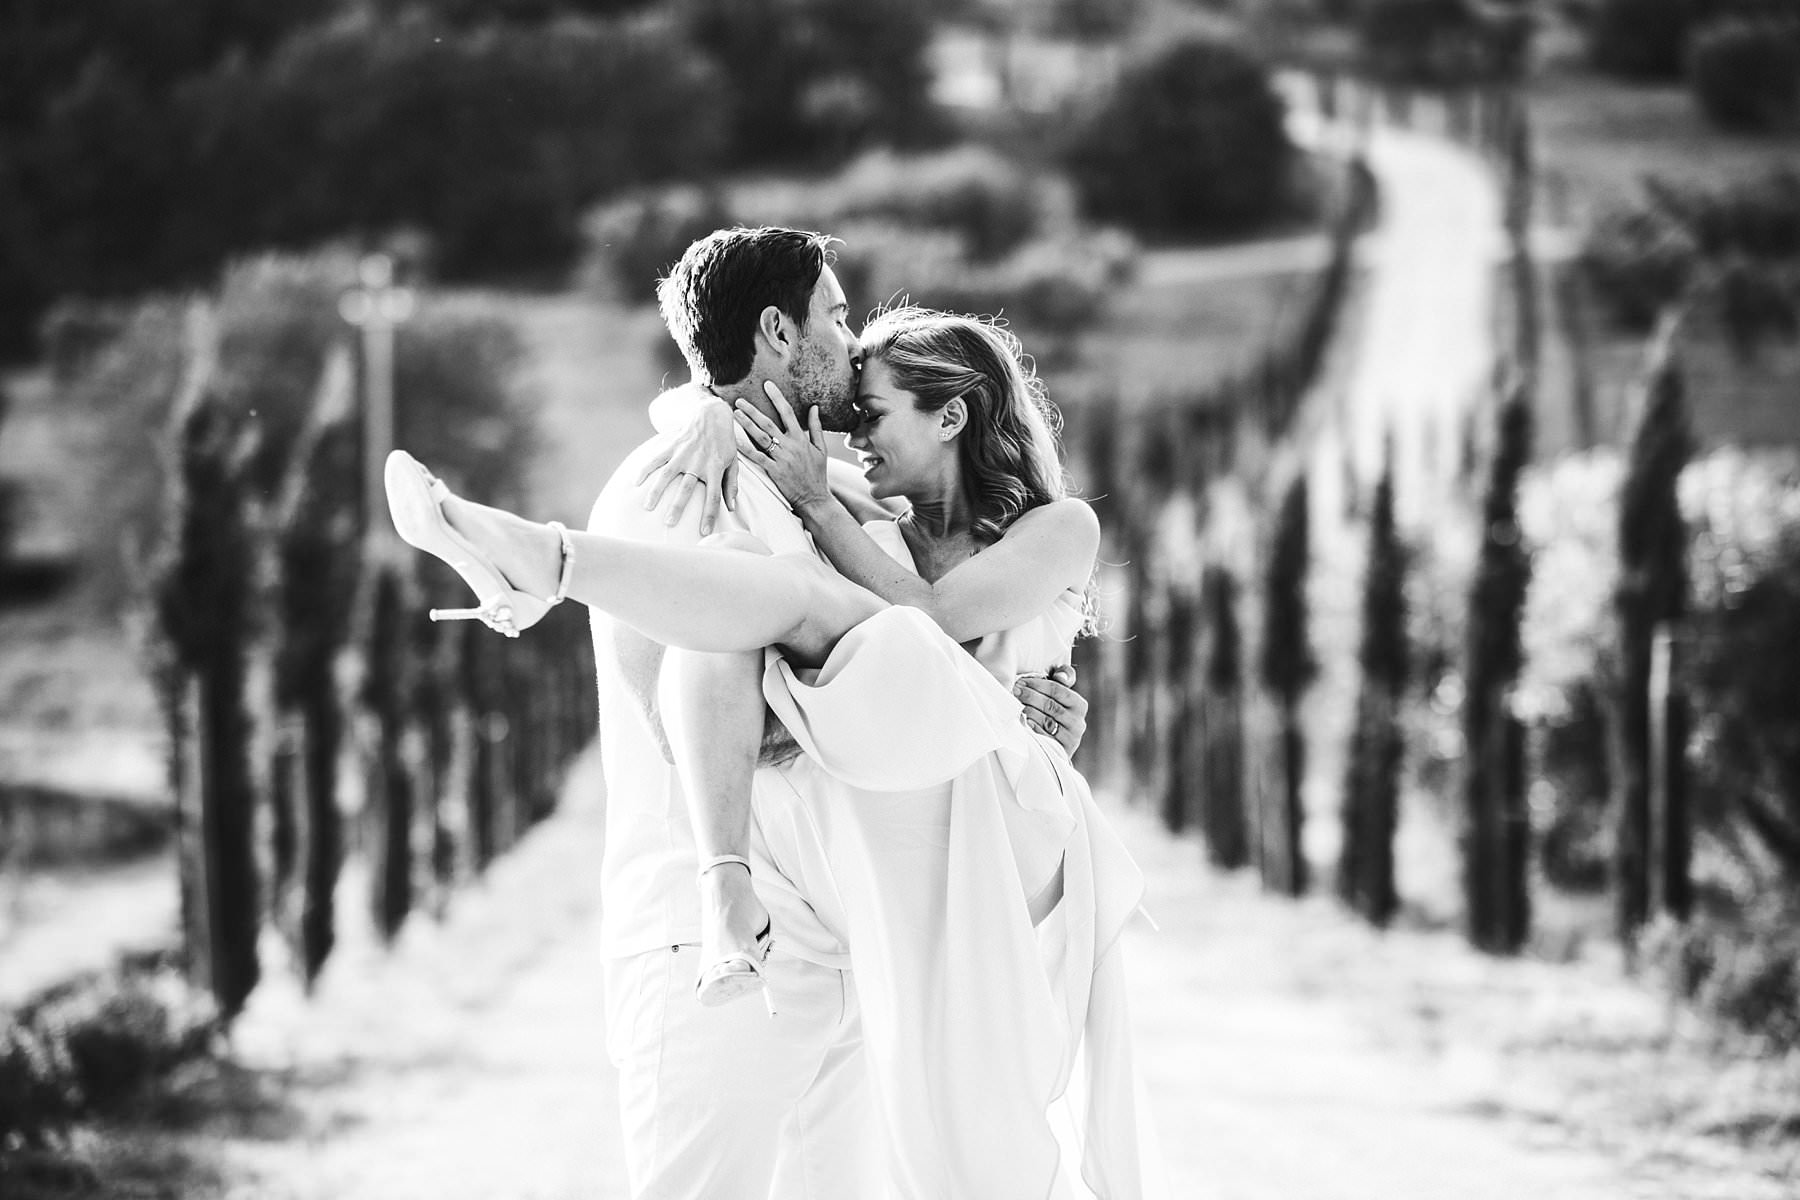 Dreamy Italy elopement with vows renewal in Val d'Orcia. Unforgettable couple portrait photo with cypresses street and rolling hills typical of the Tuscany countryside of Pienza